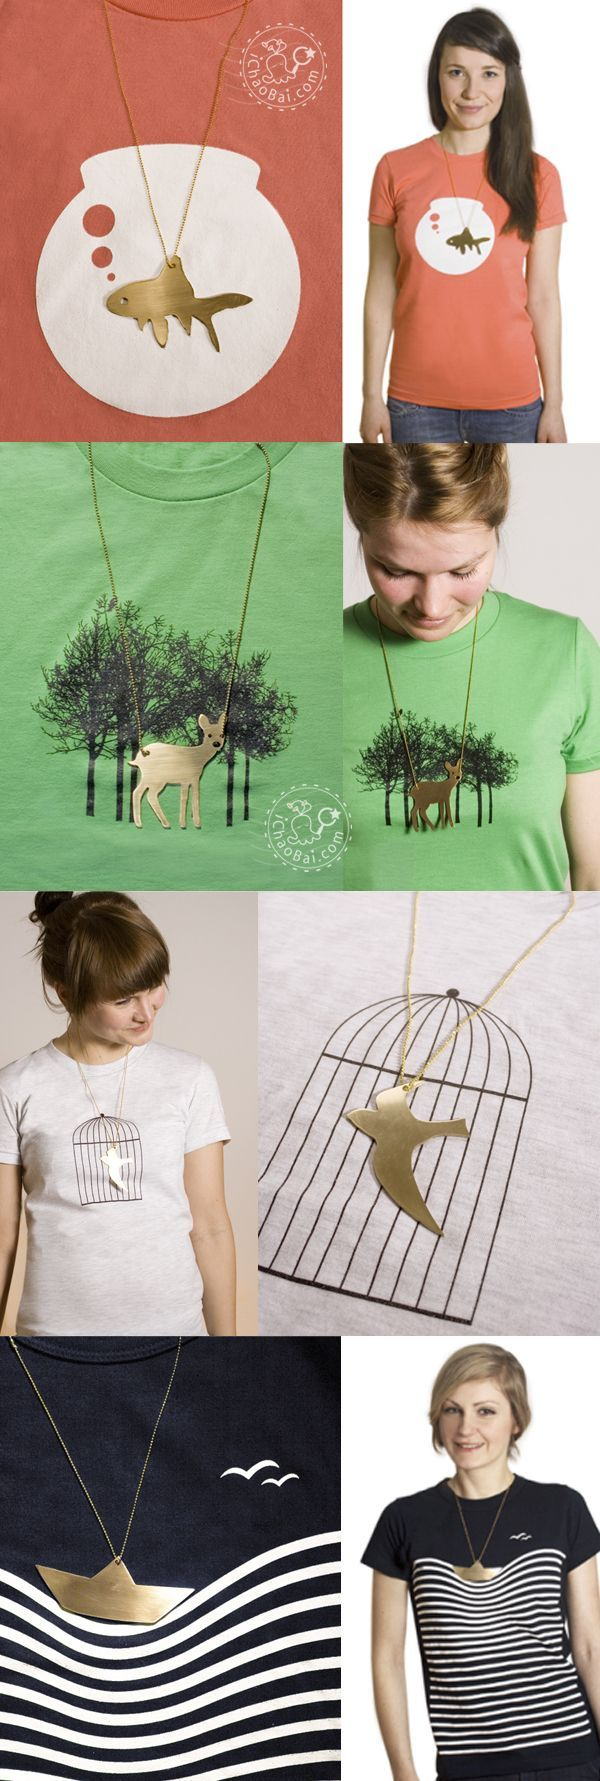 Fun combination of t-shirt and necklace design